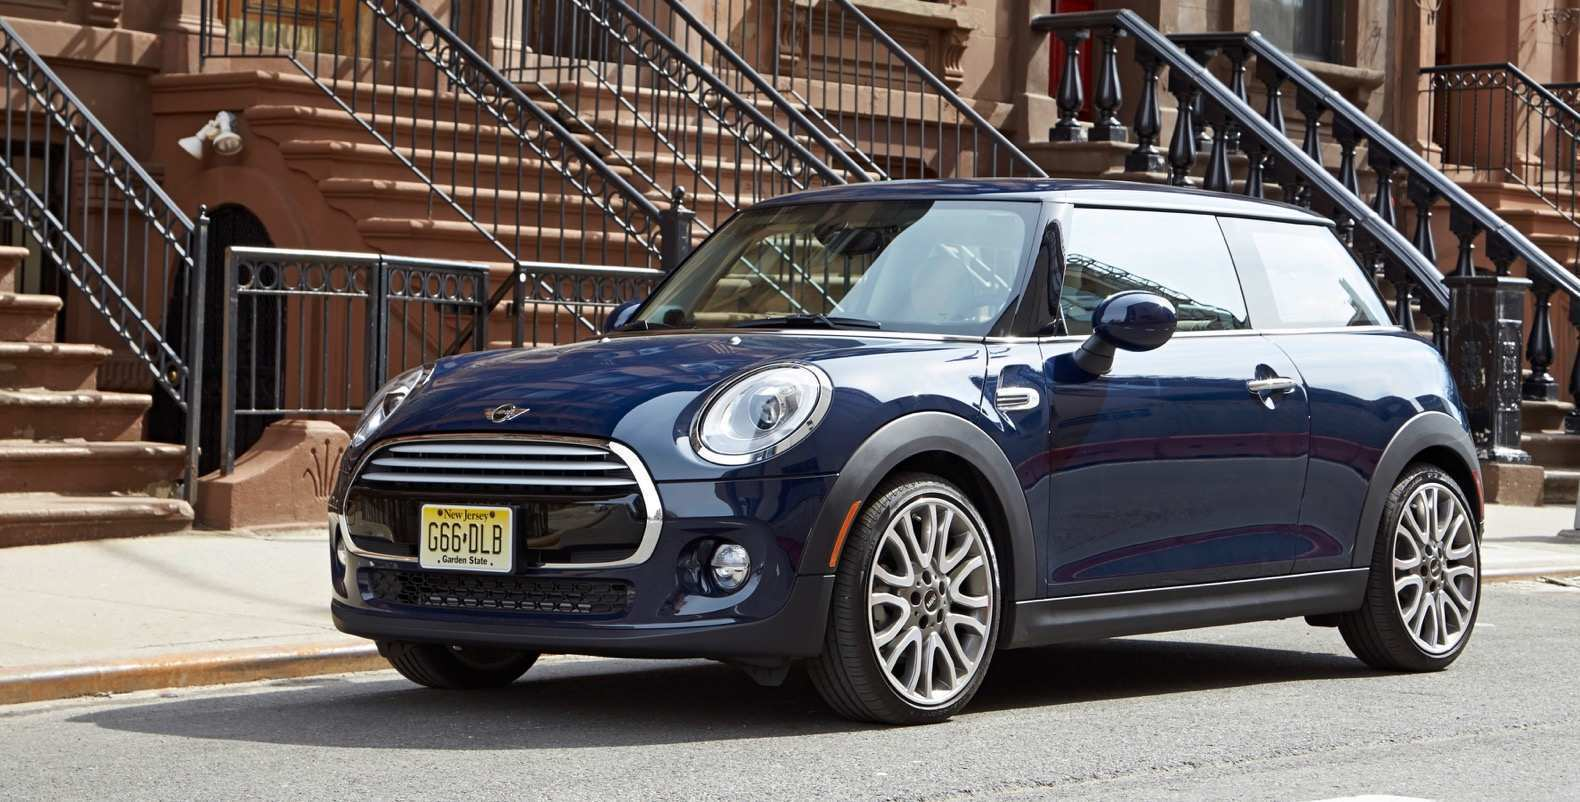 46 Best Review 2020 Mini Cooper Convertible S Spesification by 2020 Mini Cooper Convertible S